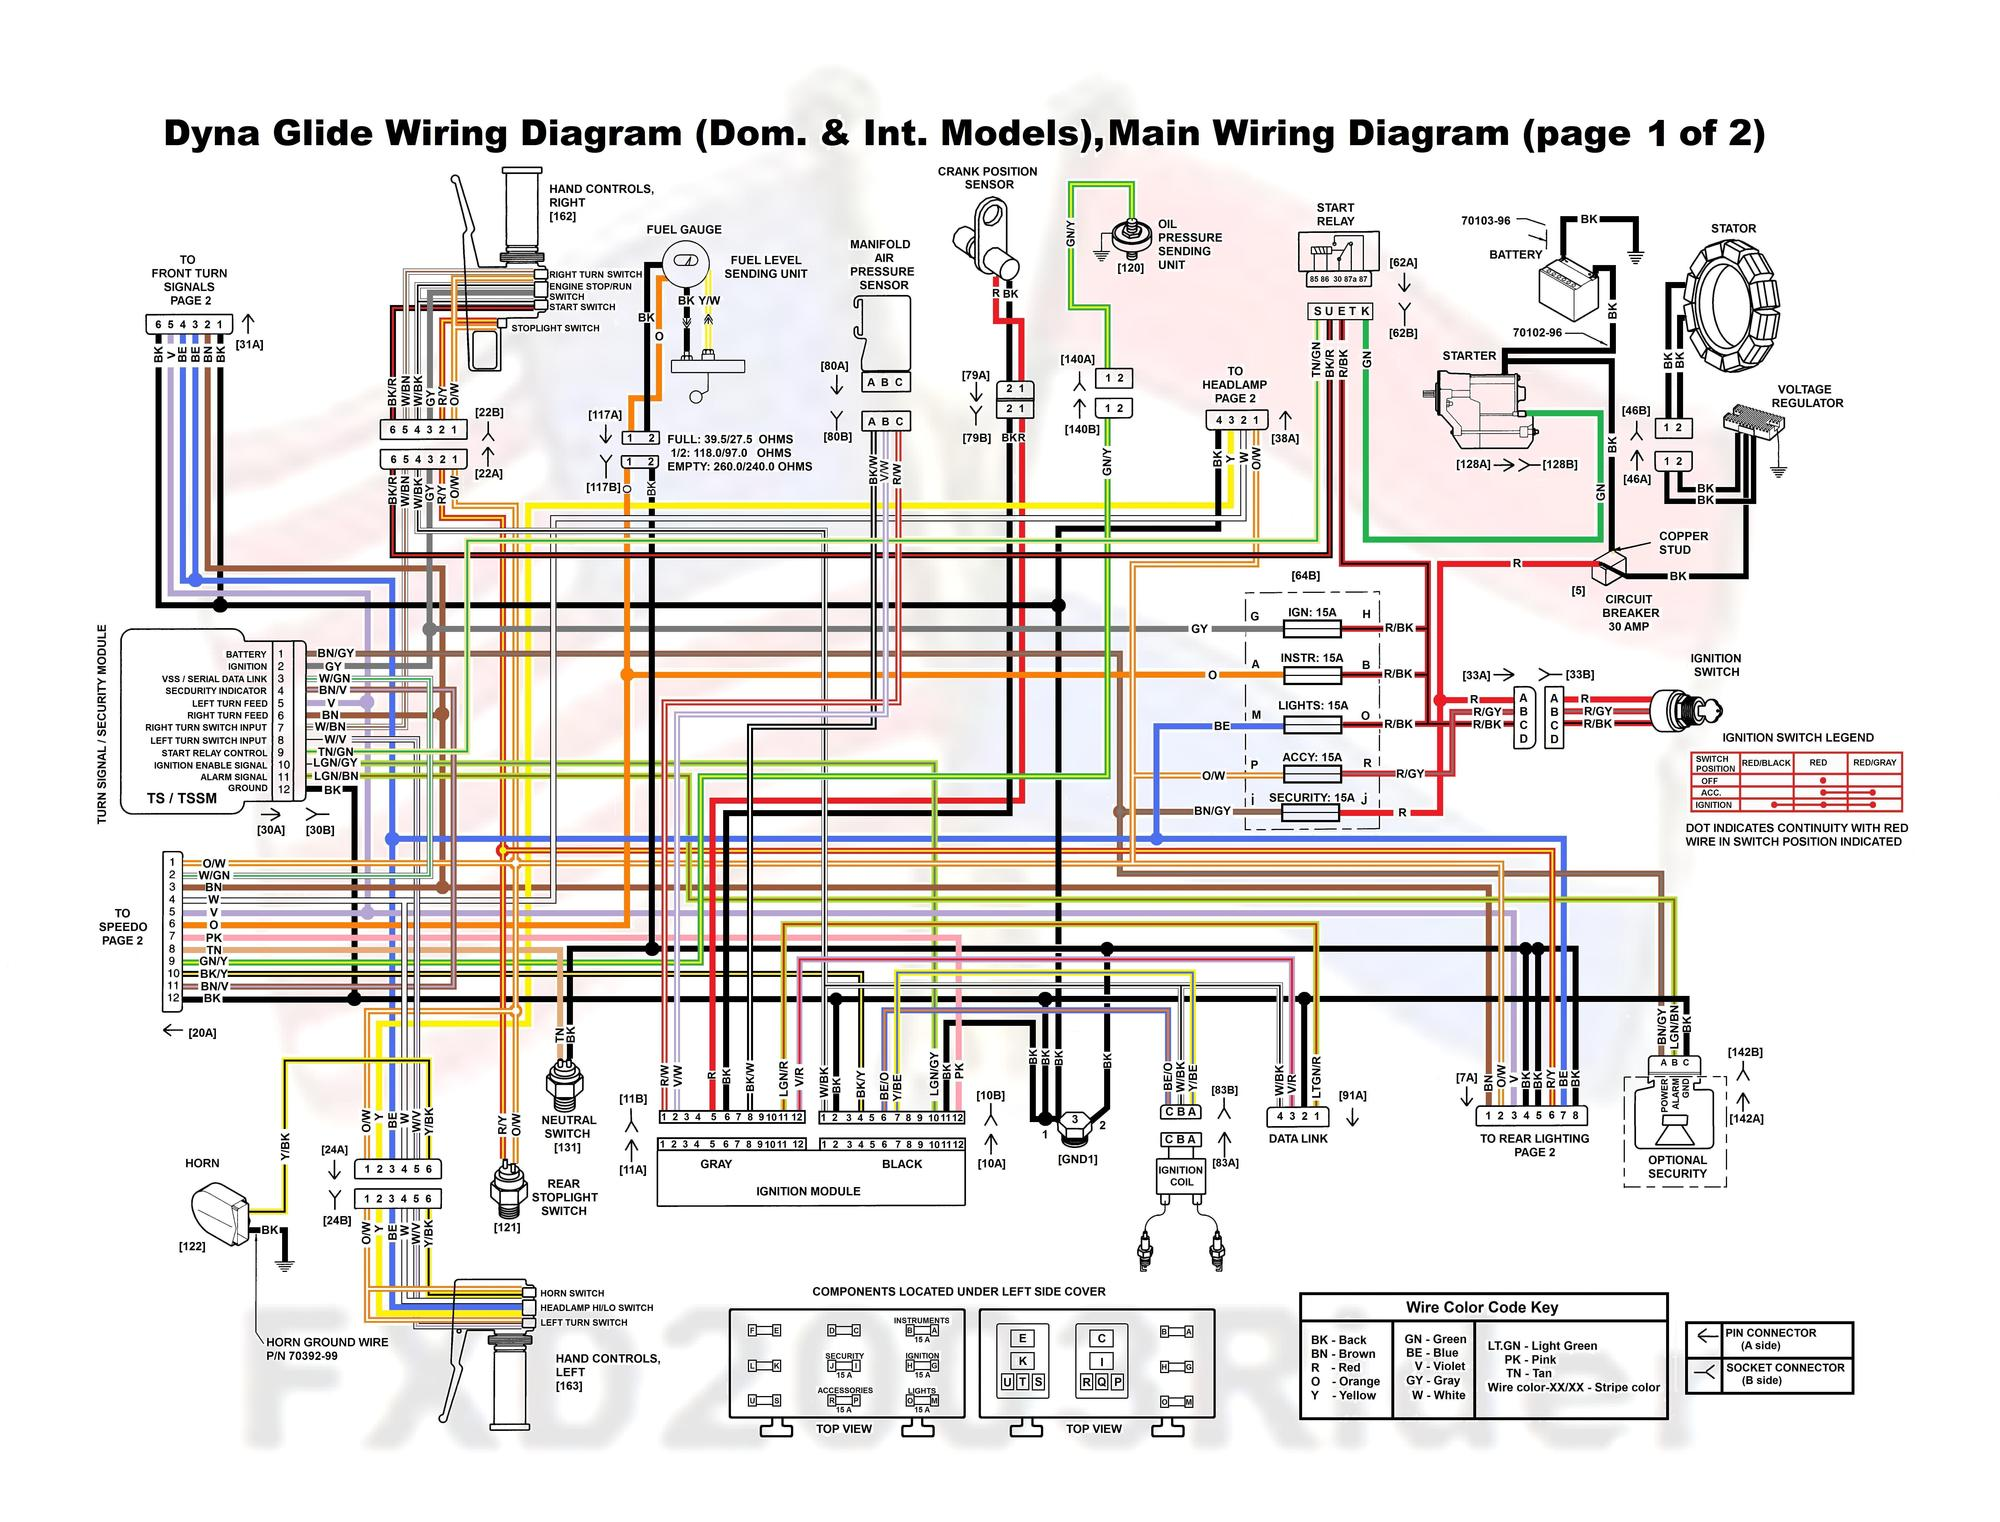 1973 harley davidson wiring diagram wiring diagram detailed basic wiring diagram harley davidson 1976 harley davidson golf cart wiring diagram [ 2000 x 1522 Pixel ]